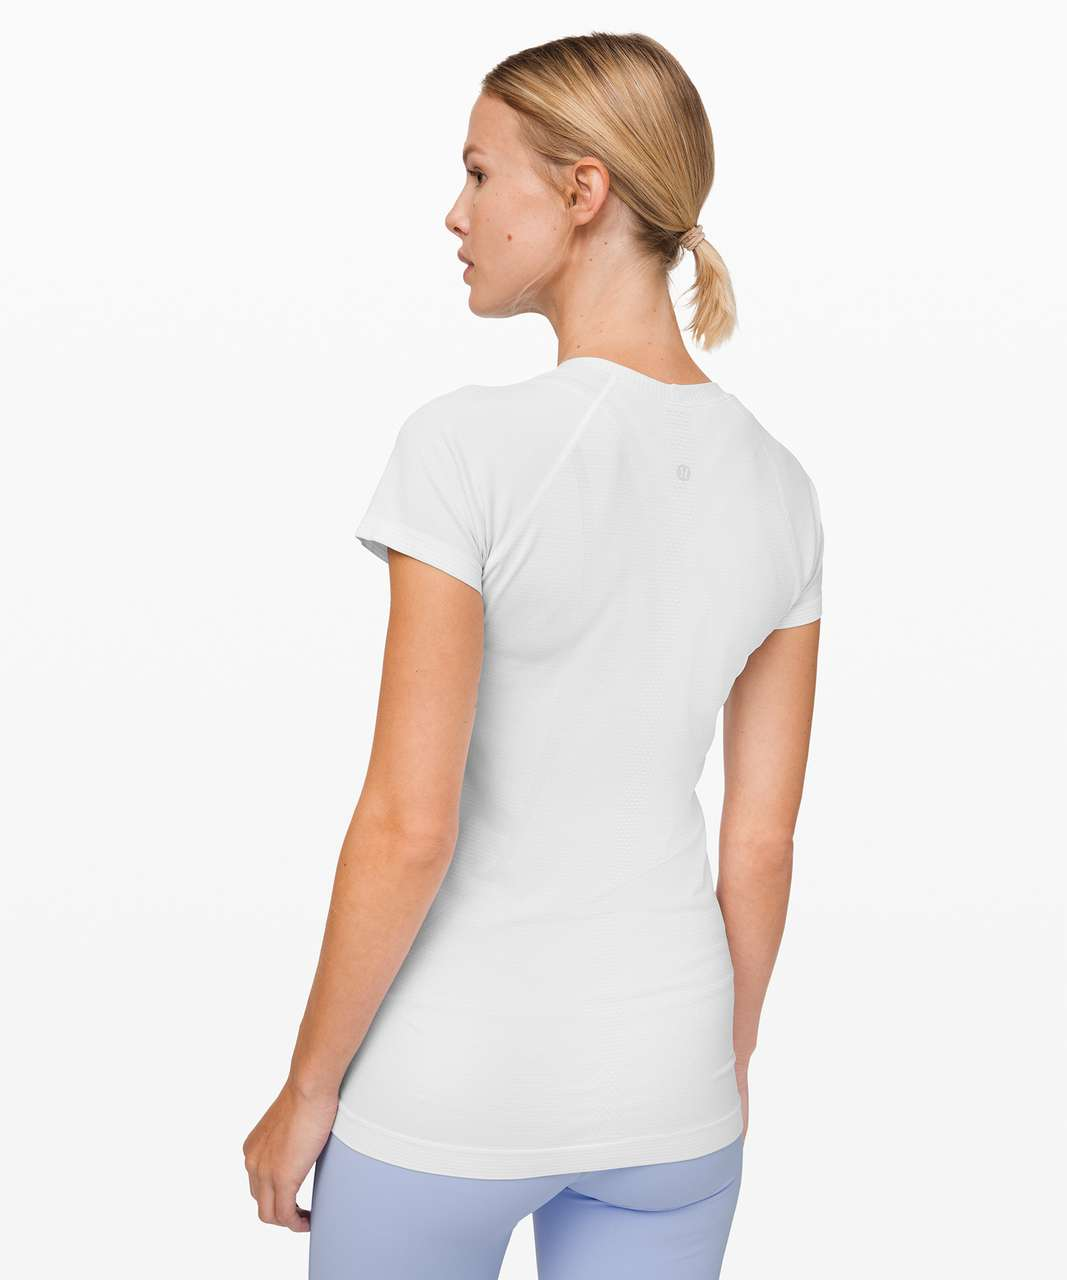 Lululemon Swiftly Speed Short Sleeve *Shine - White / White / Silver